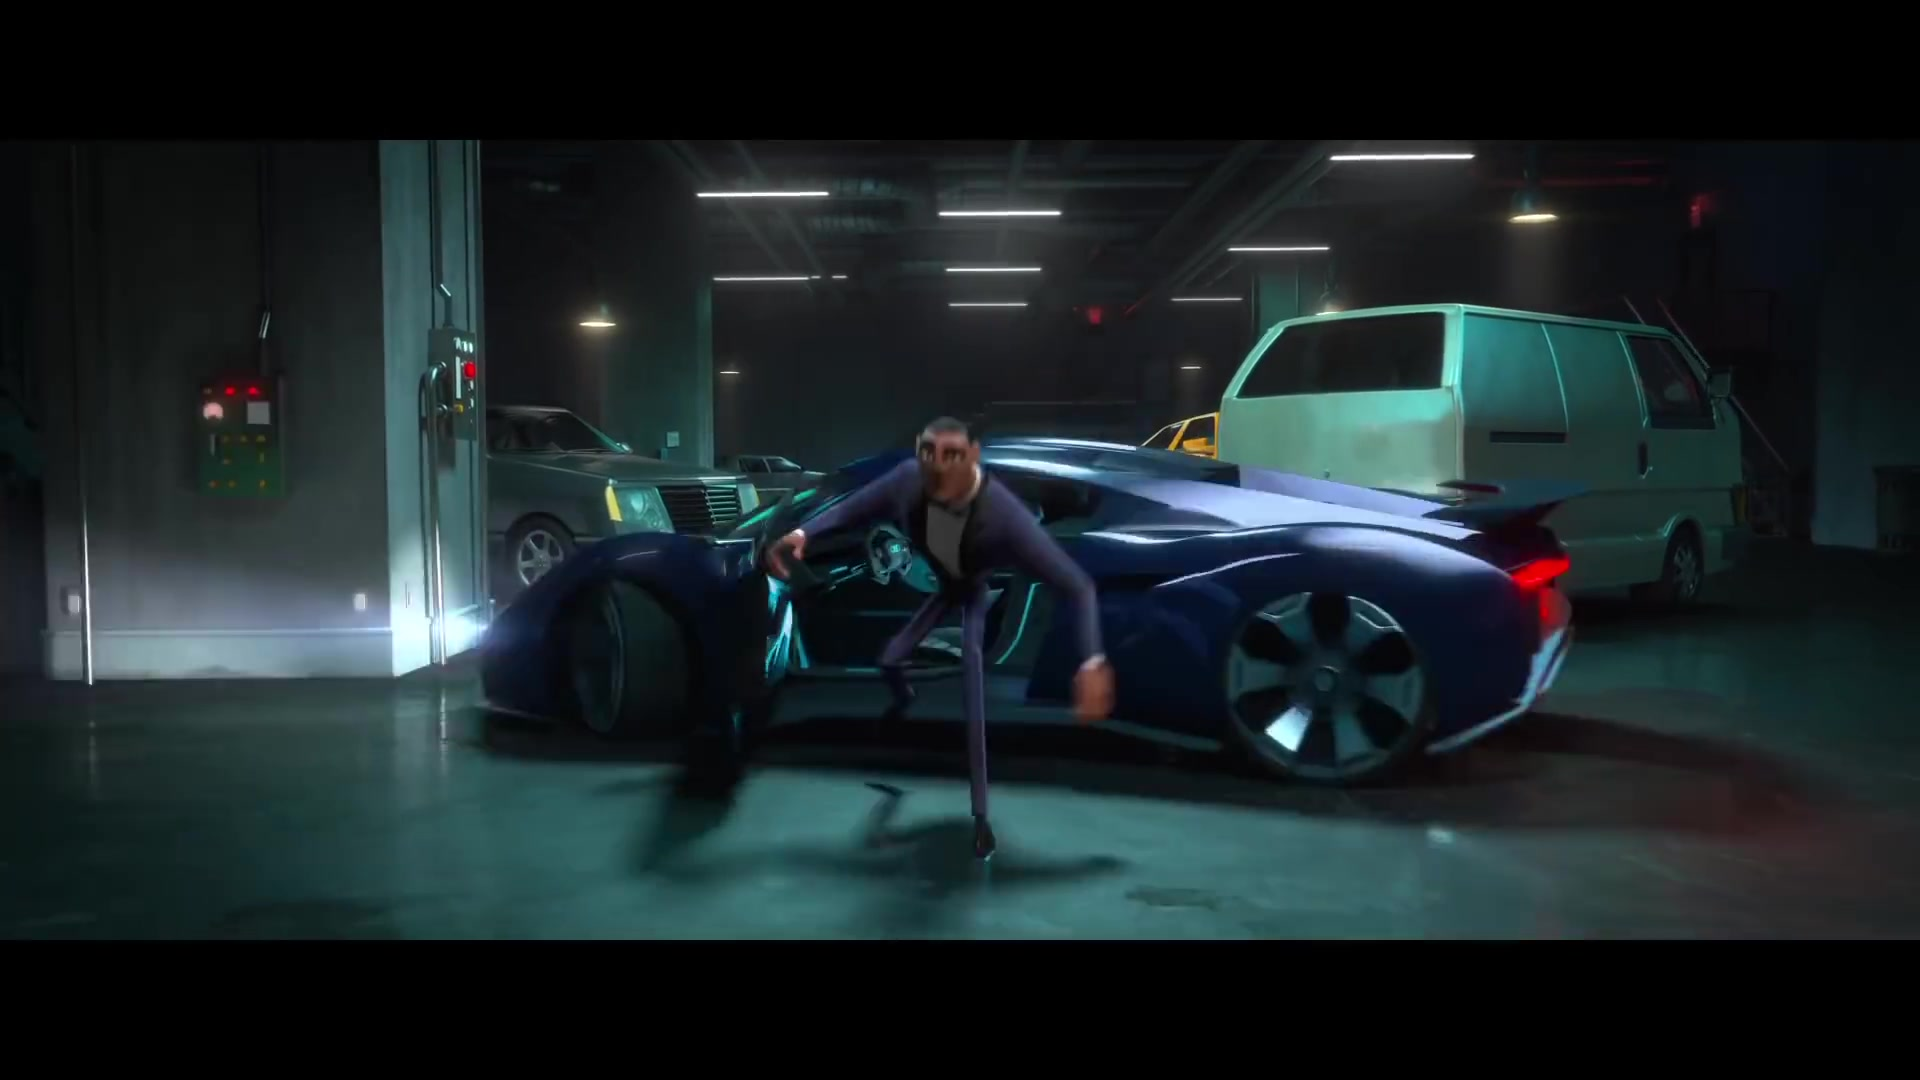 Srt Hellcat Charger >> Audi RSQ E-TRON Car in Spies in Disguise (2019) Animation Movie